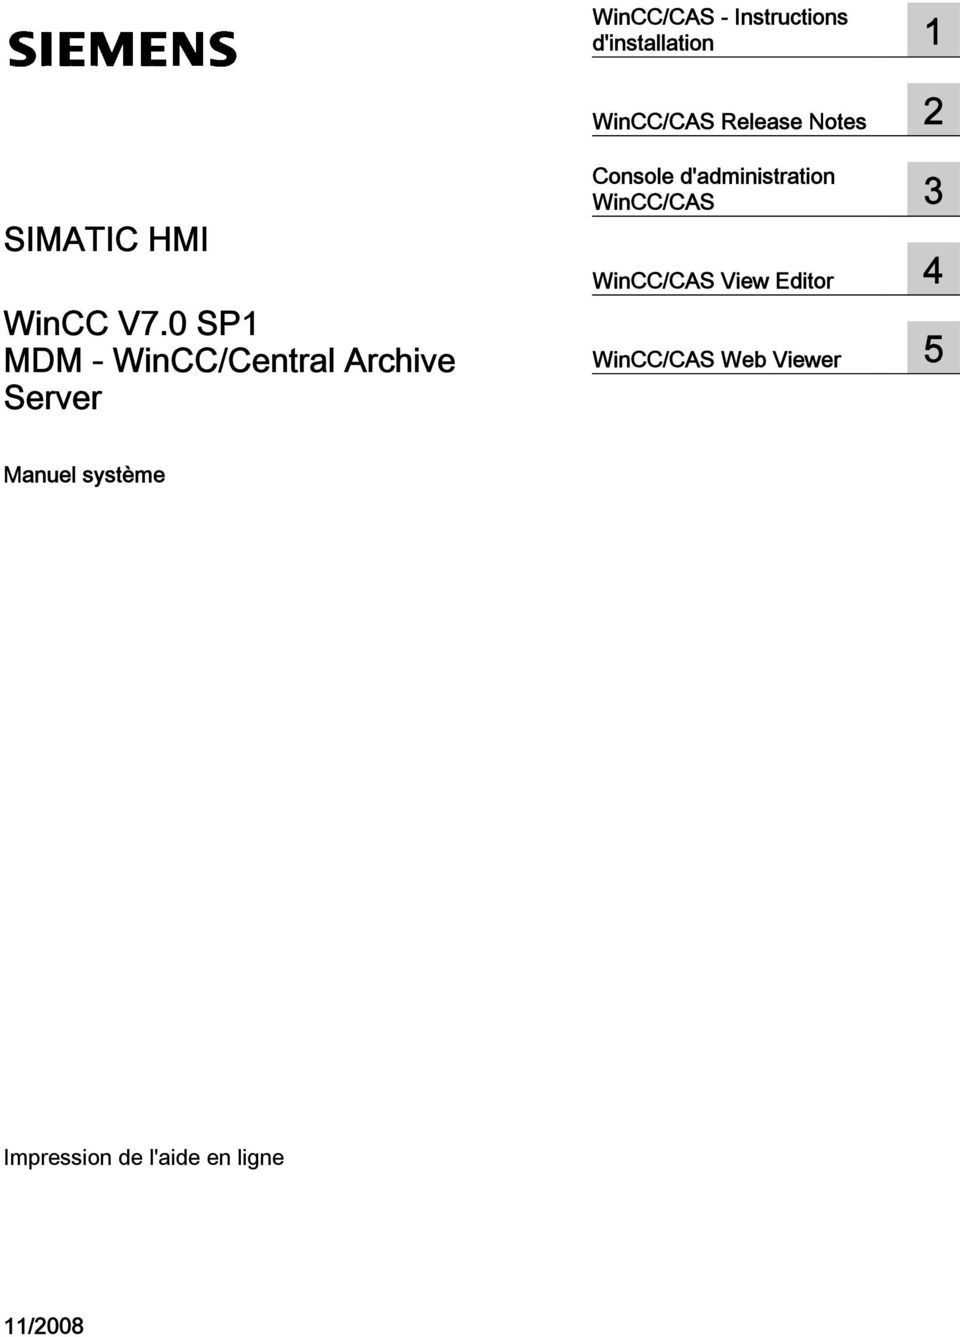 0 SP1 MDM - WinCC/Central Archive Server Console d'administration